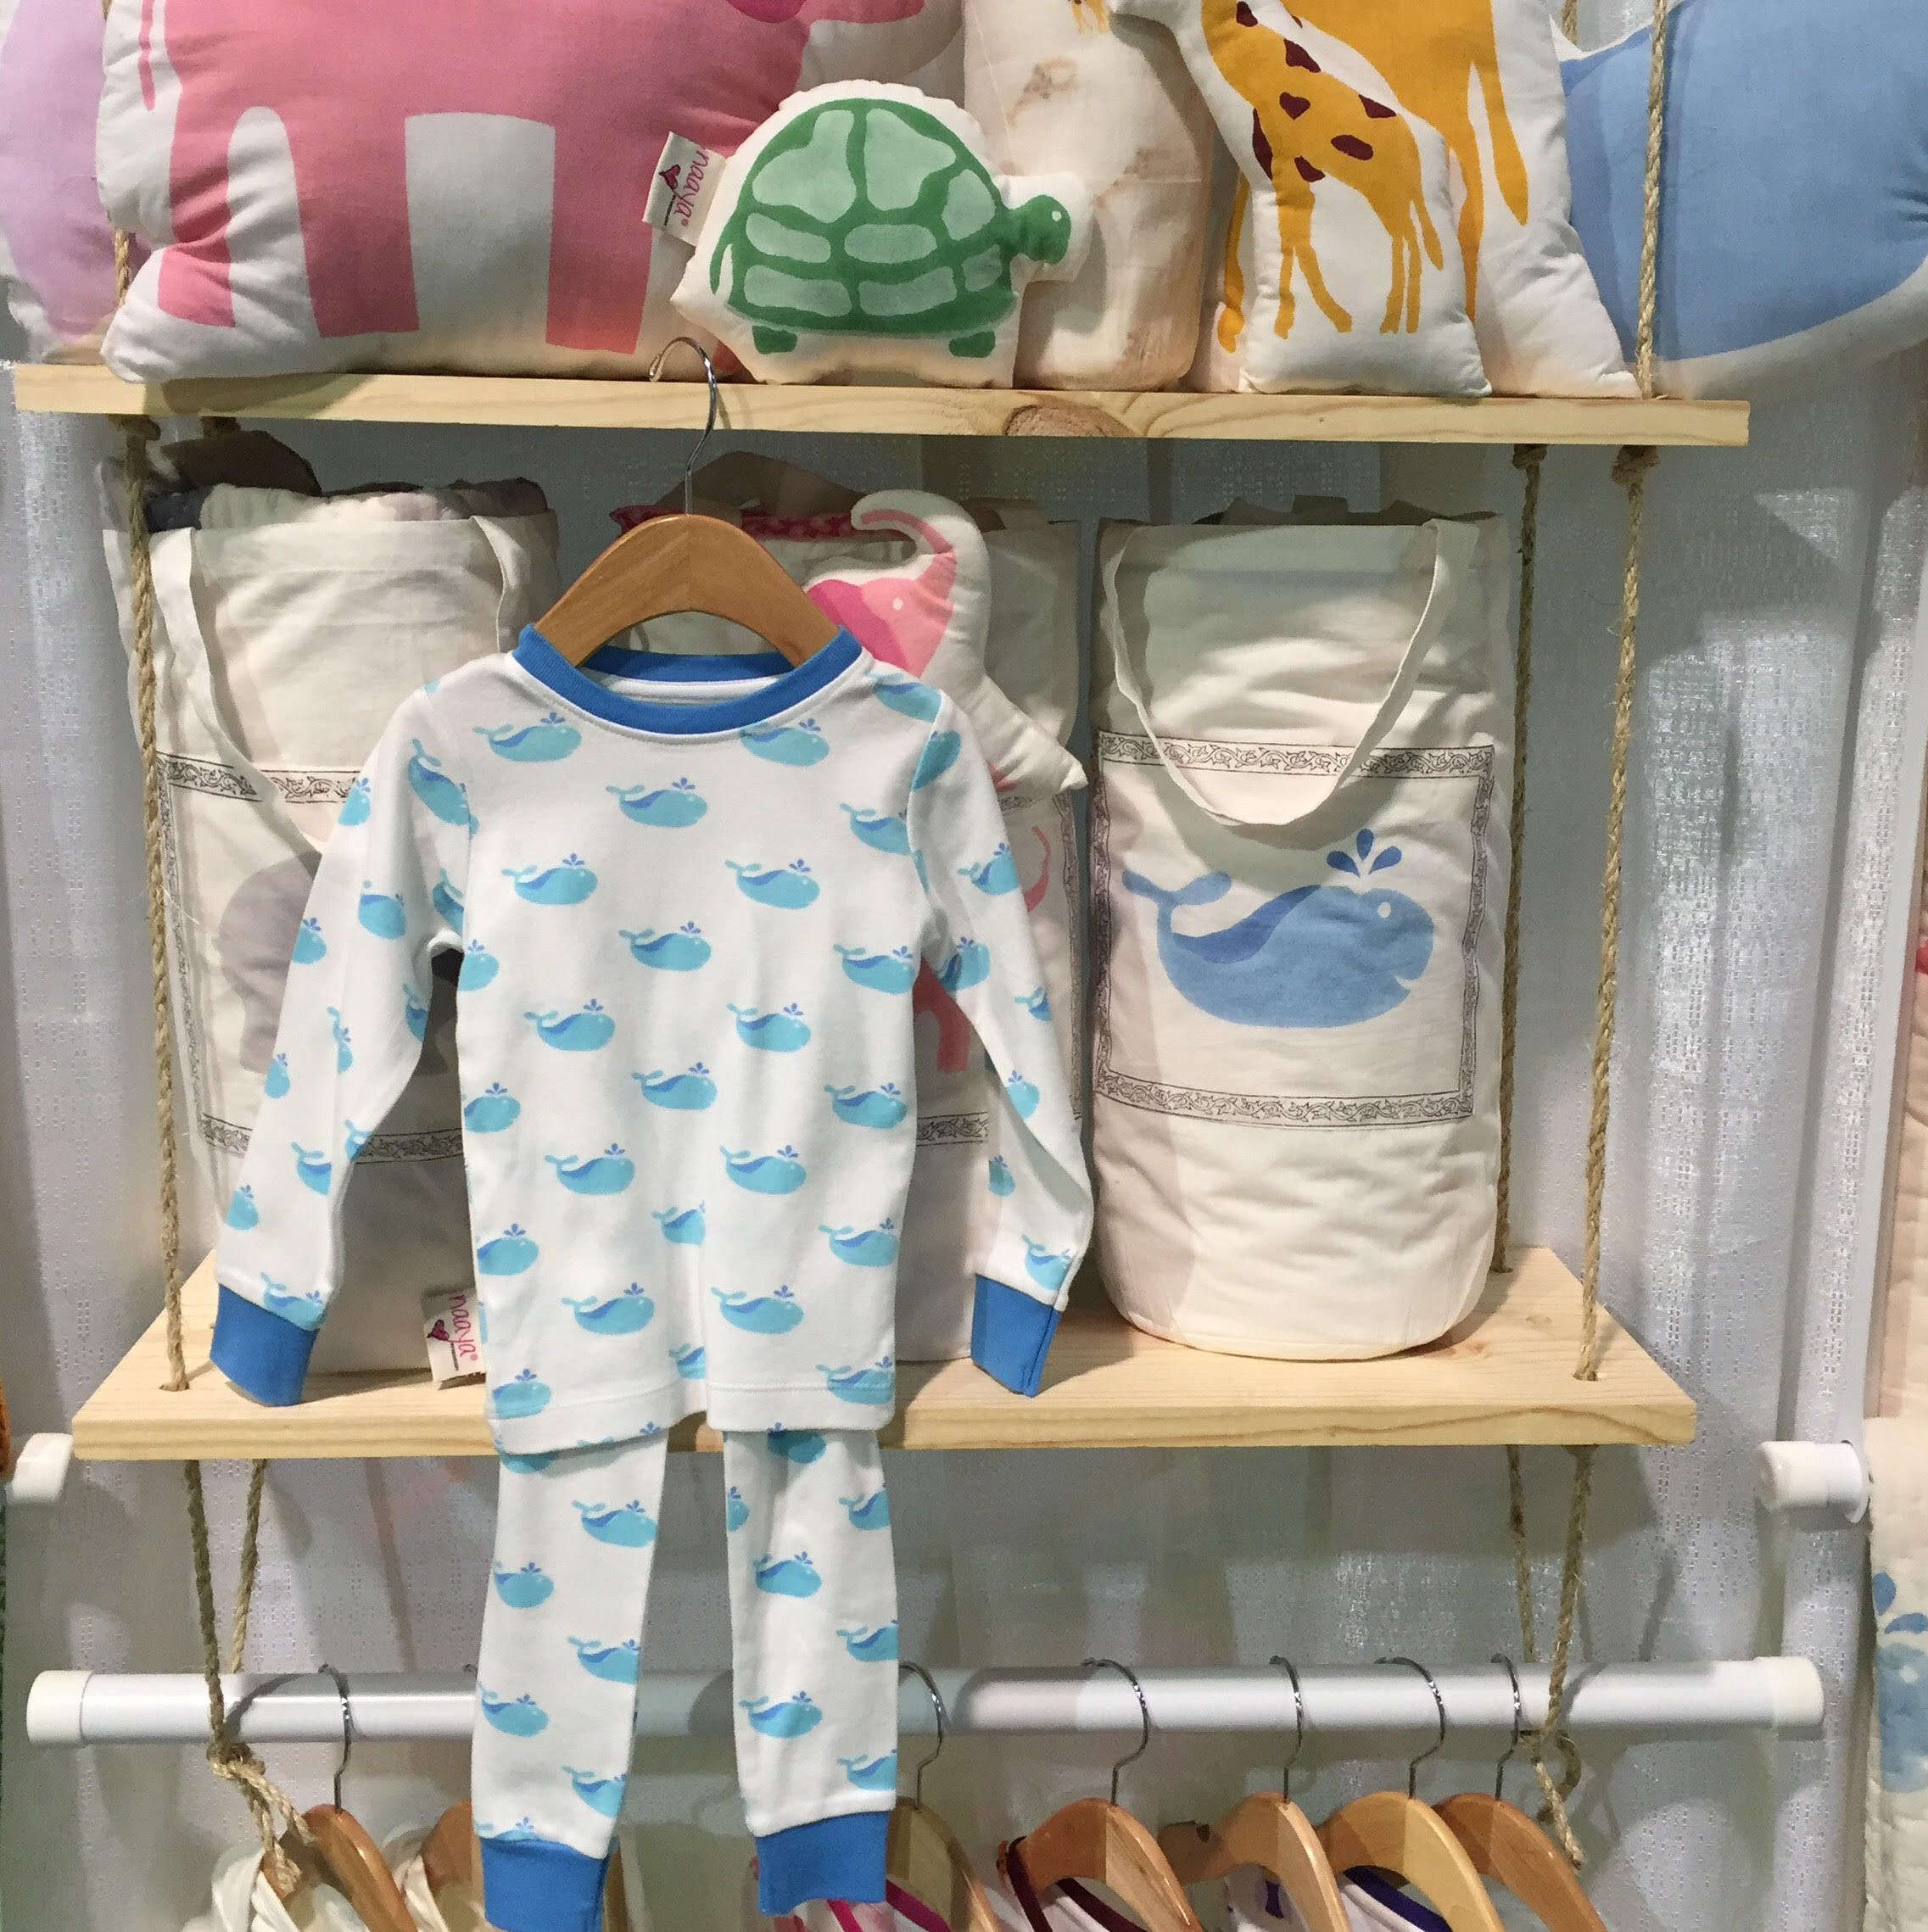 Top Baby Gear Trends for 2016 Block Printing Naaya by moonlight | Momma Society-The Community of Modern Moms | www.mommasociety.com | Join our community on Instagram @MommaSociety